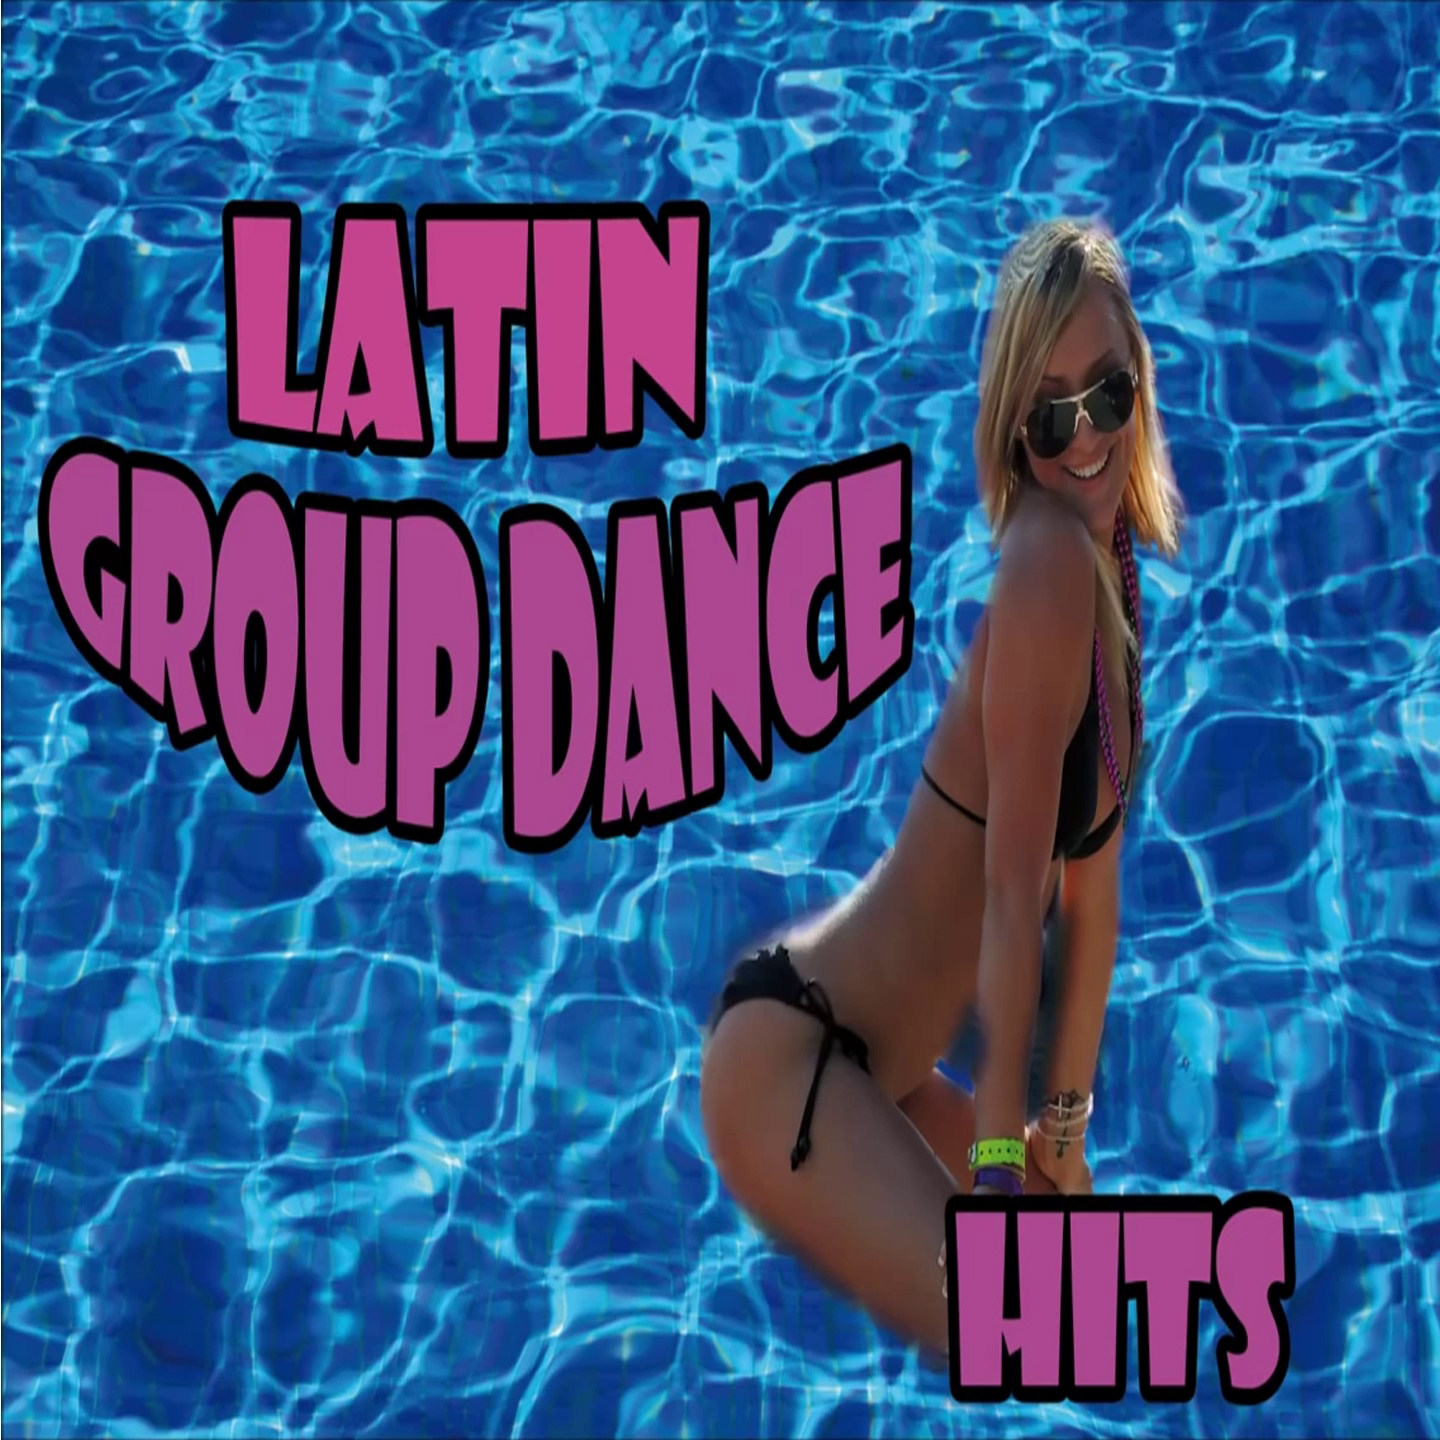 Latin Group Dance